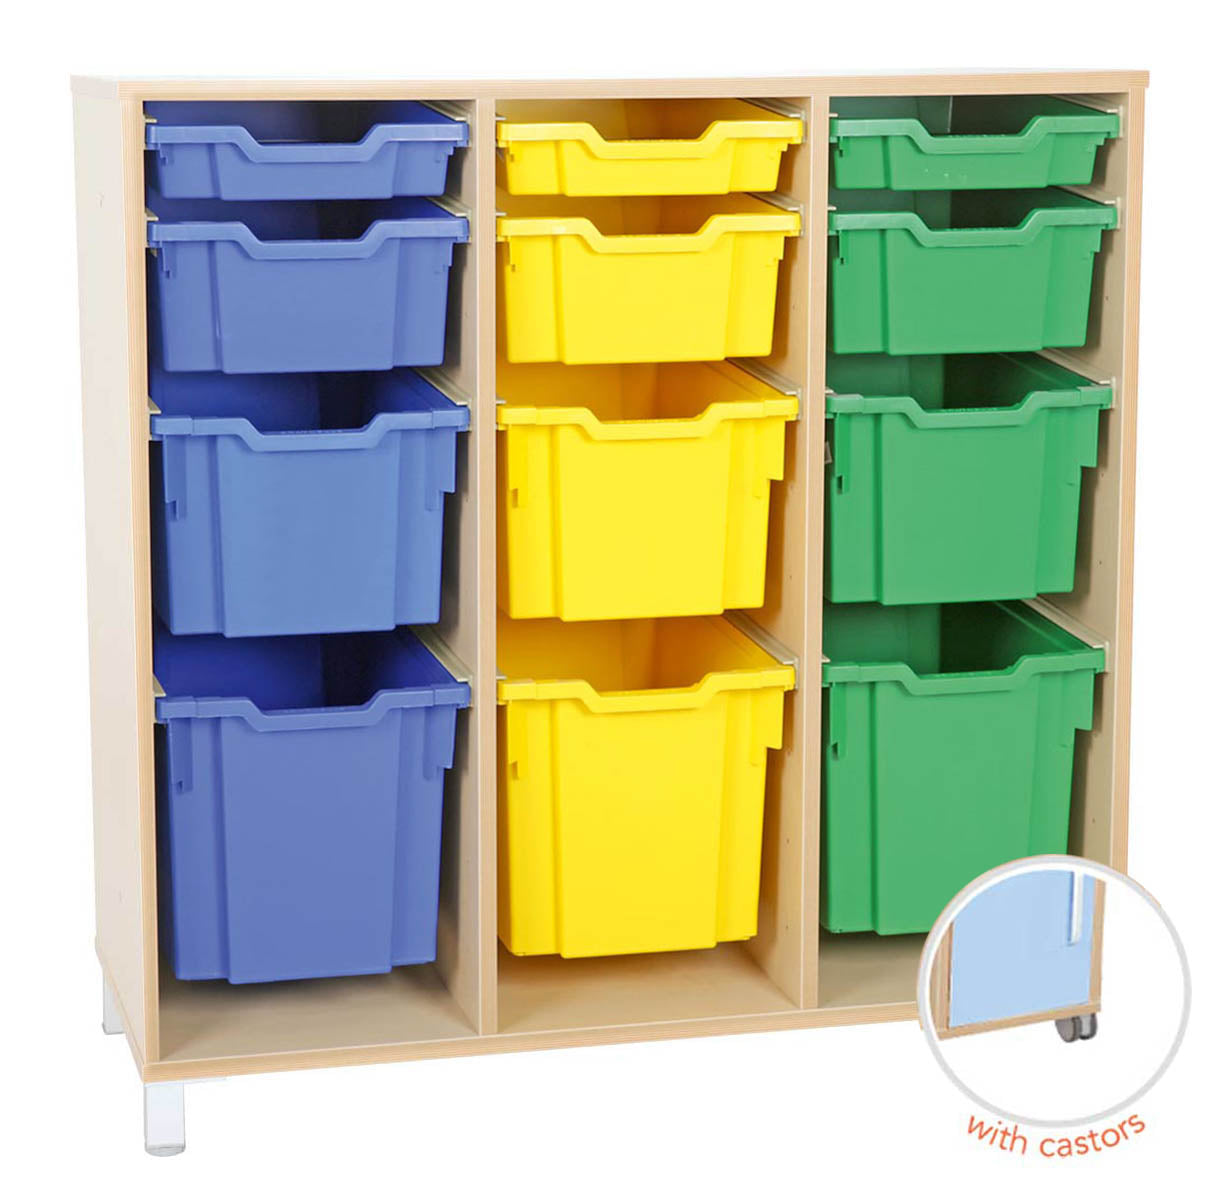 L cabinet for plastic container - 3 rows with castors